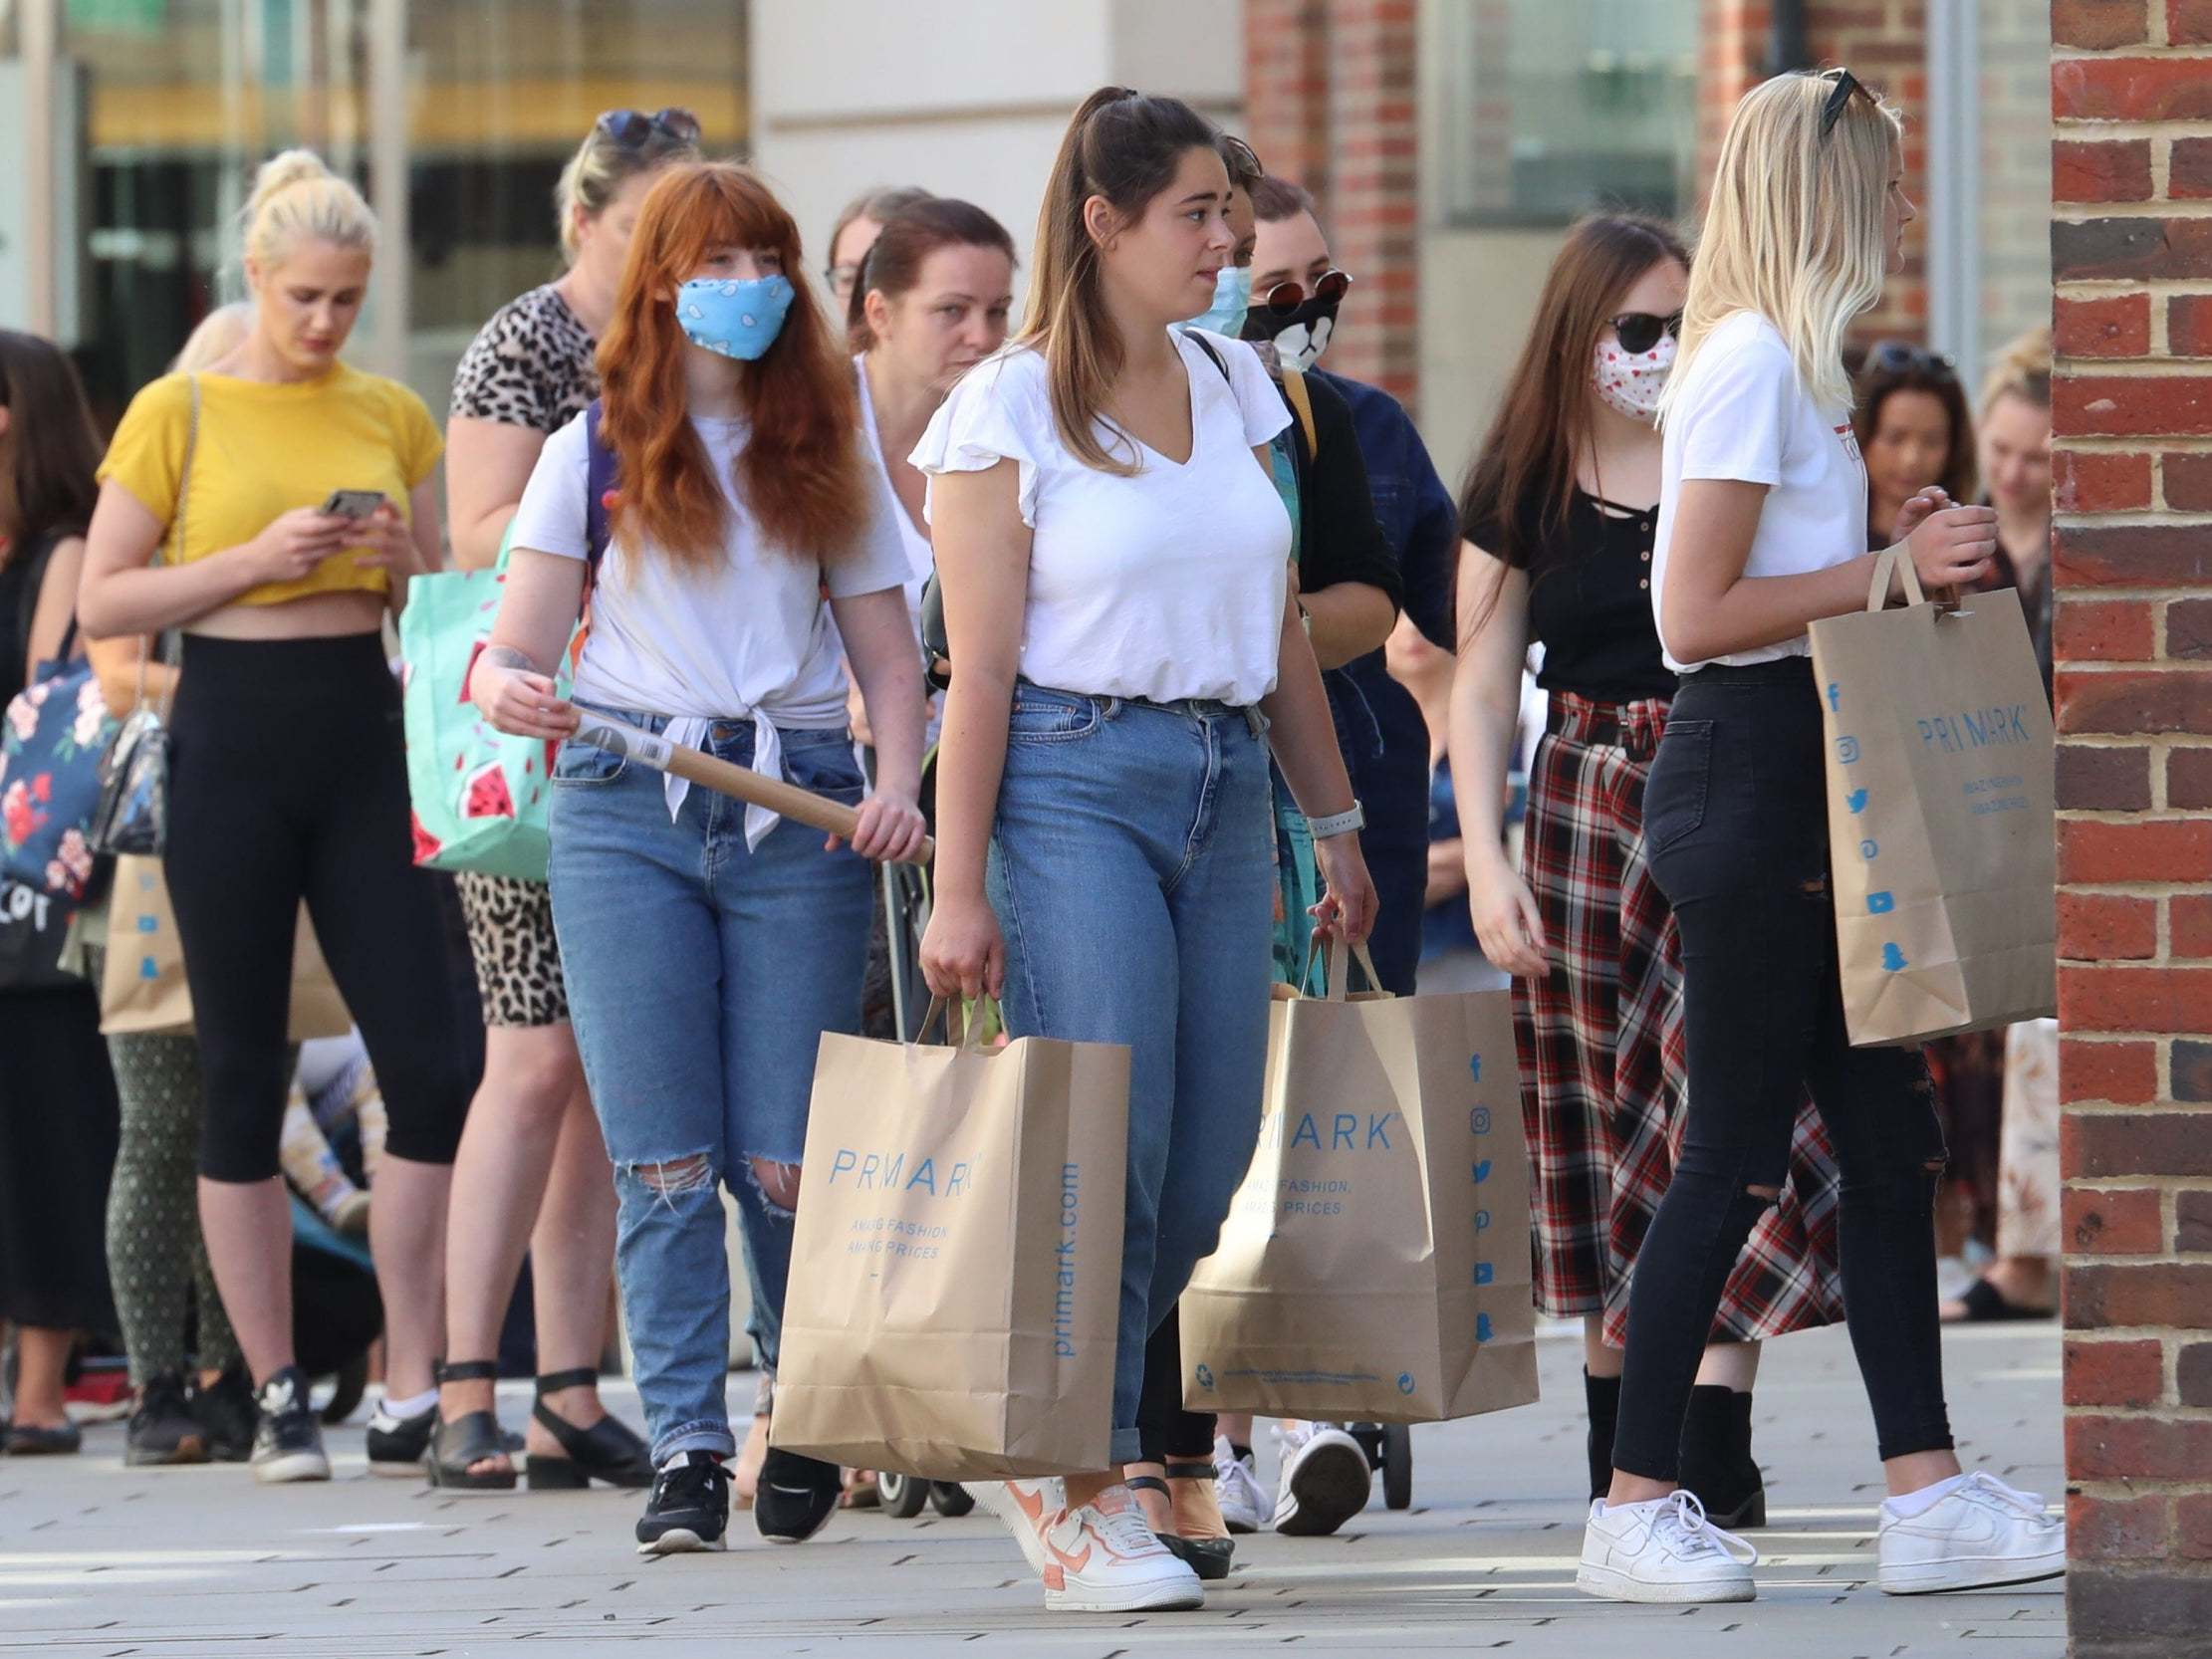 Retail sales jump 12 per cent as lockdown eases and shops begin to reopen